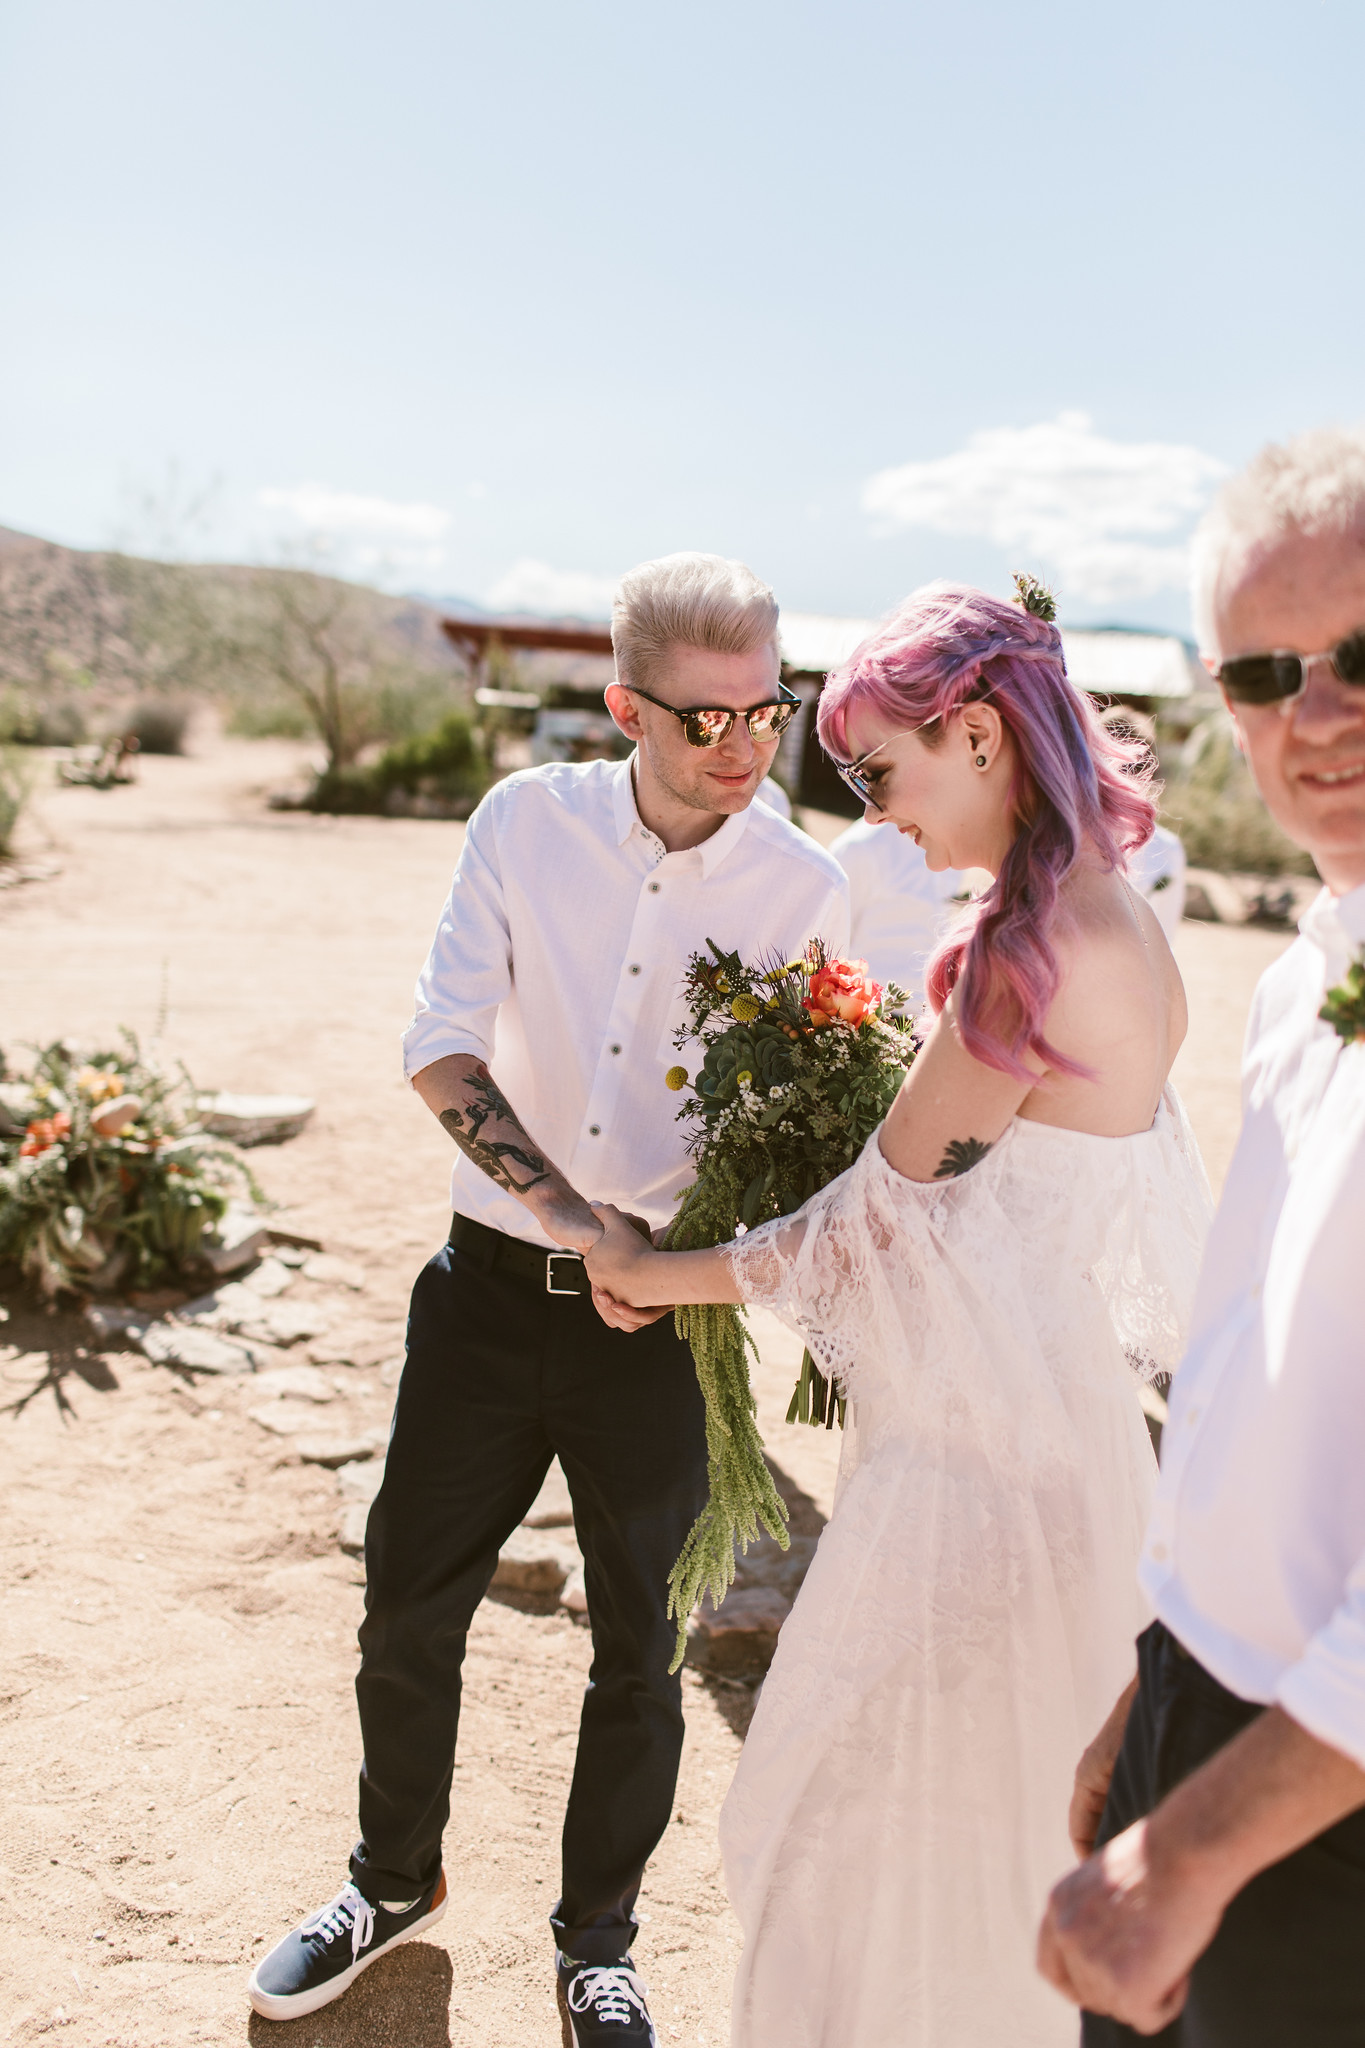 zoe-london-wedding-joshua-tree-17.jpg